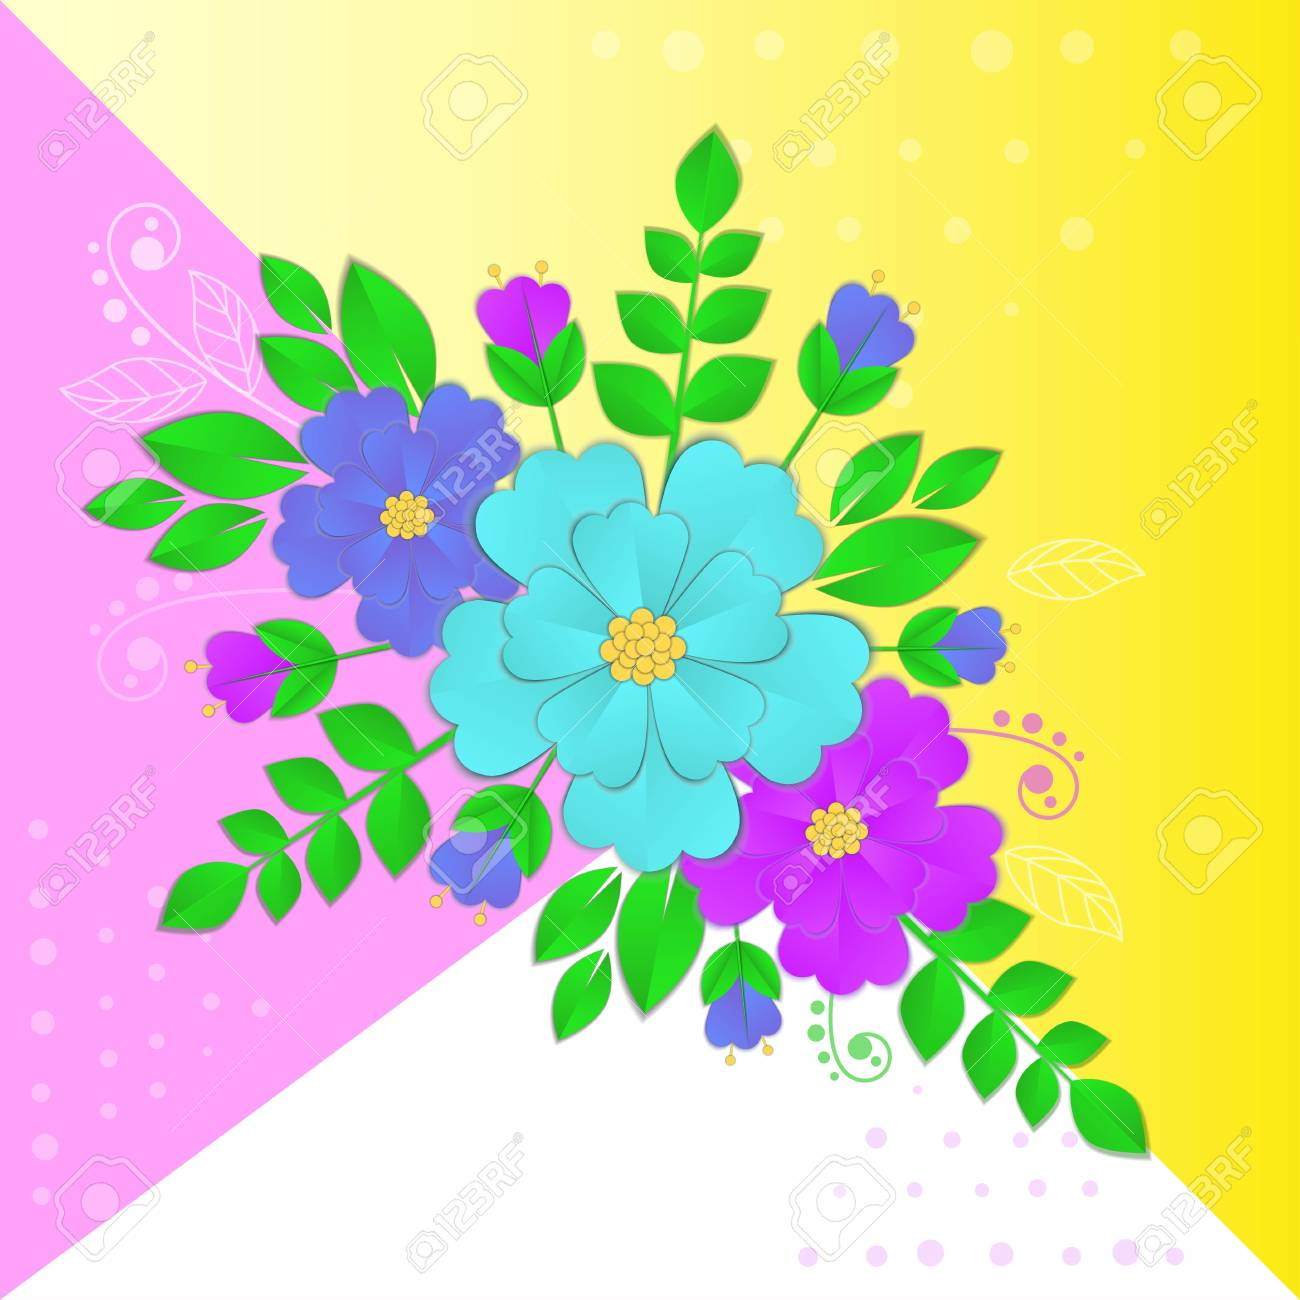 Paper Flowers And Leaves On Bright Background Royalty Free Cliparts